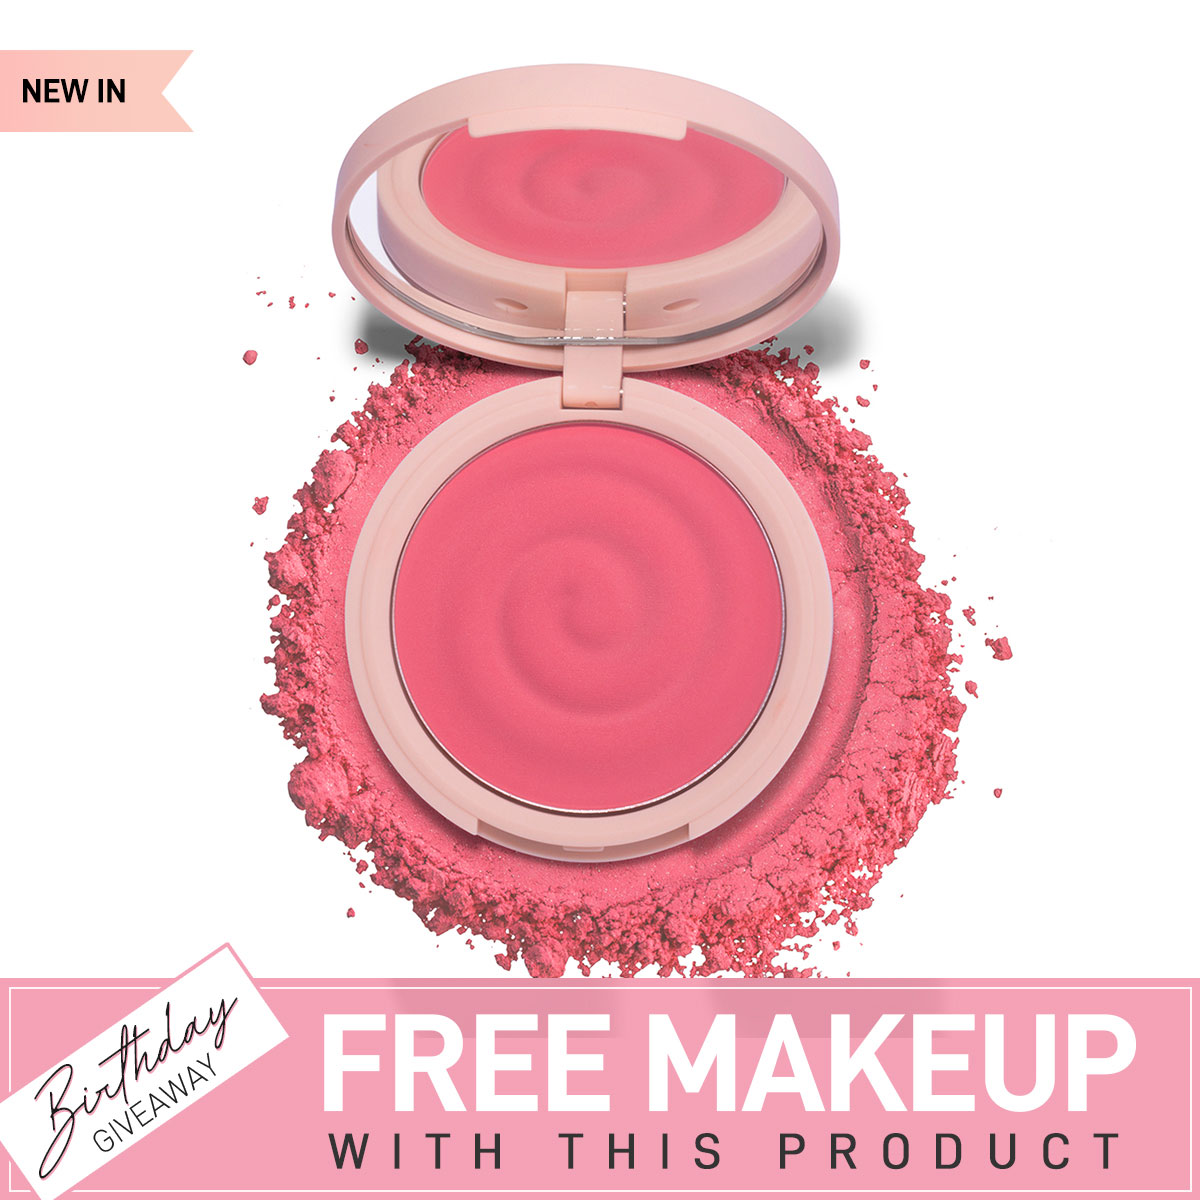 K.Play Flavoured Blush - Juicy Strawberry